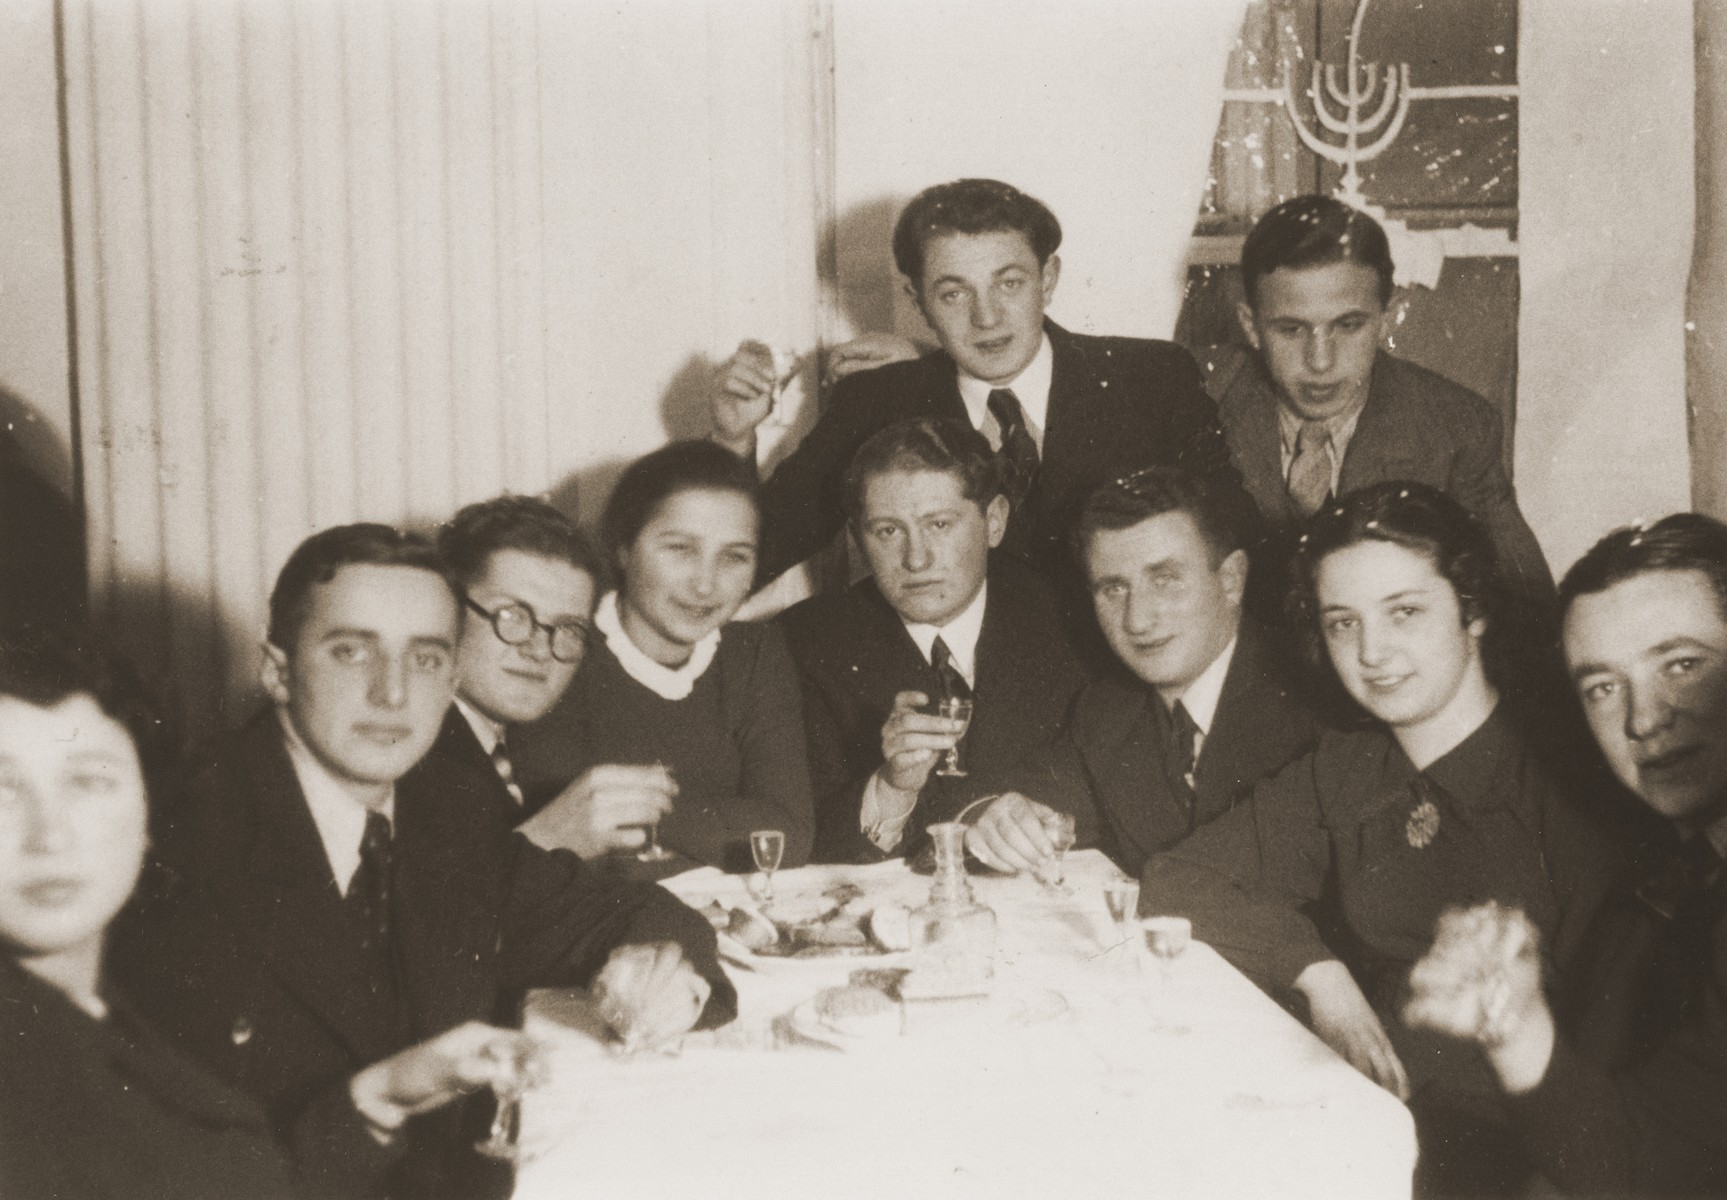 A group of Jewish friends gather in a private home for a farewell party for Rivka Radzinski prior to her departure for Palestine.  Rivka is pictured second from the right.  The photograph is inscribed to Rivka by her friend, Itzhak.